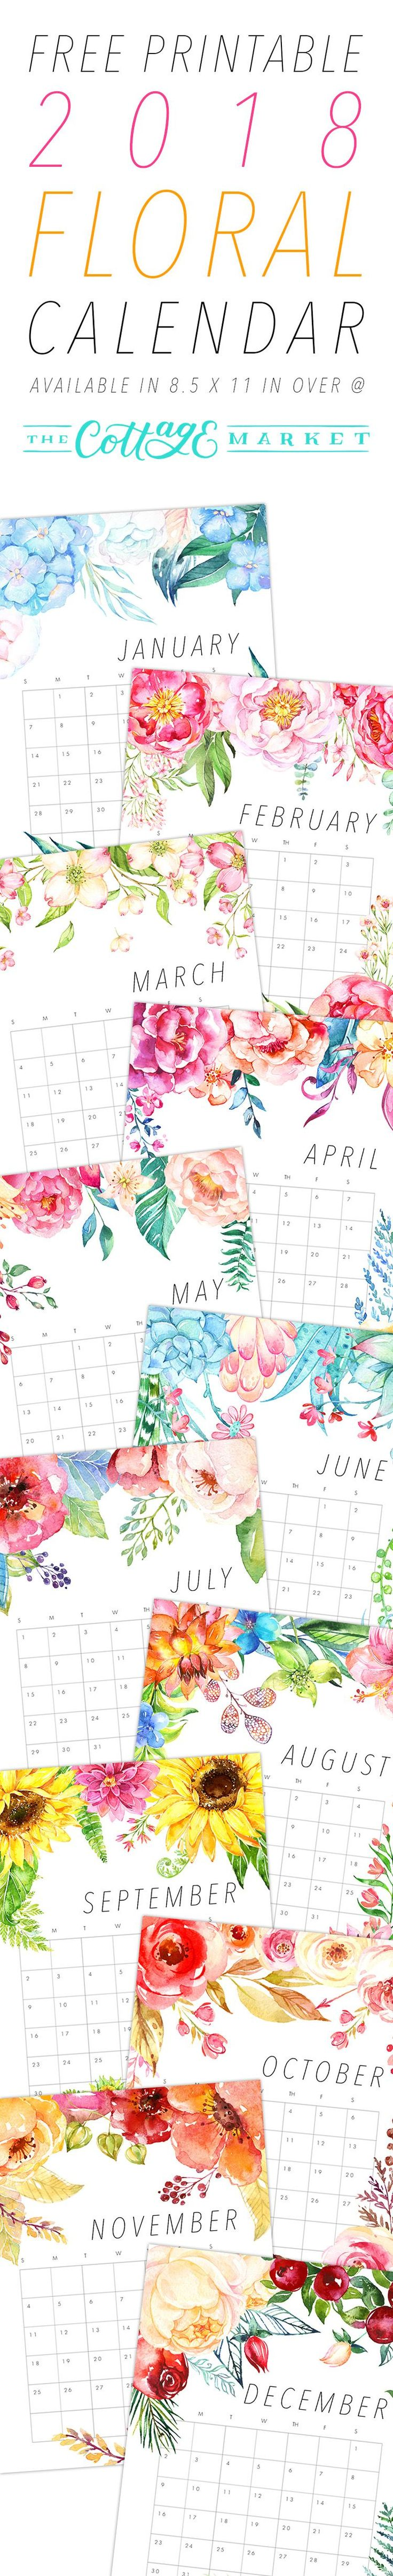 Free Printable 2018 Floral Calendar It's time for your Free Printable 2018 F…